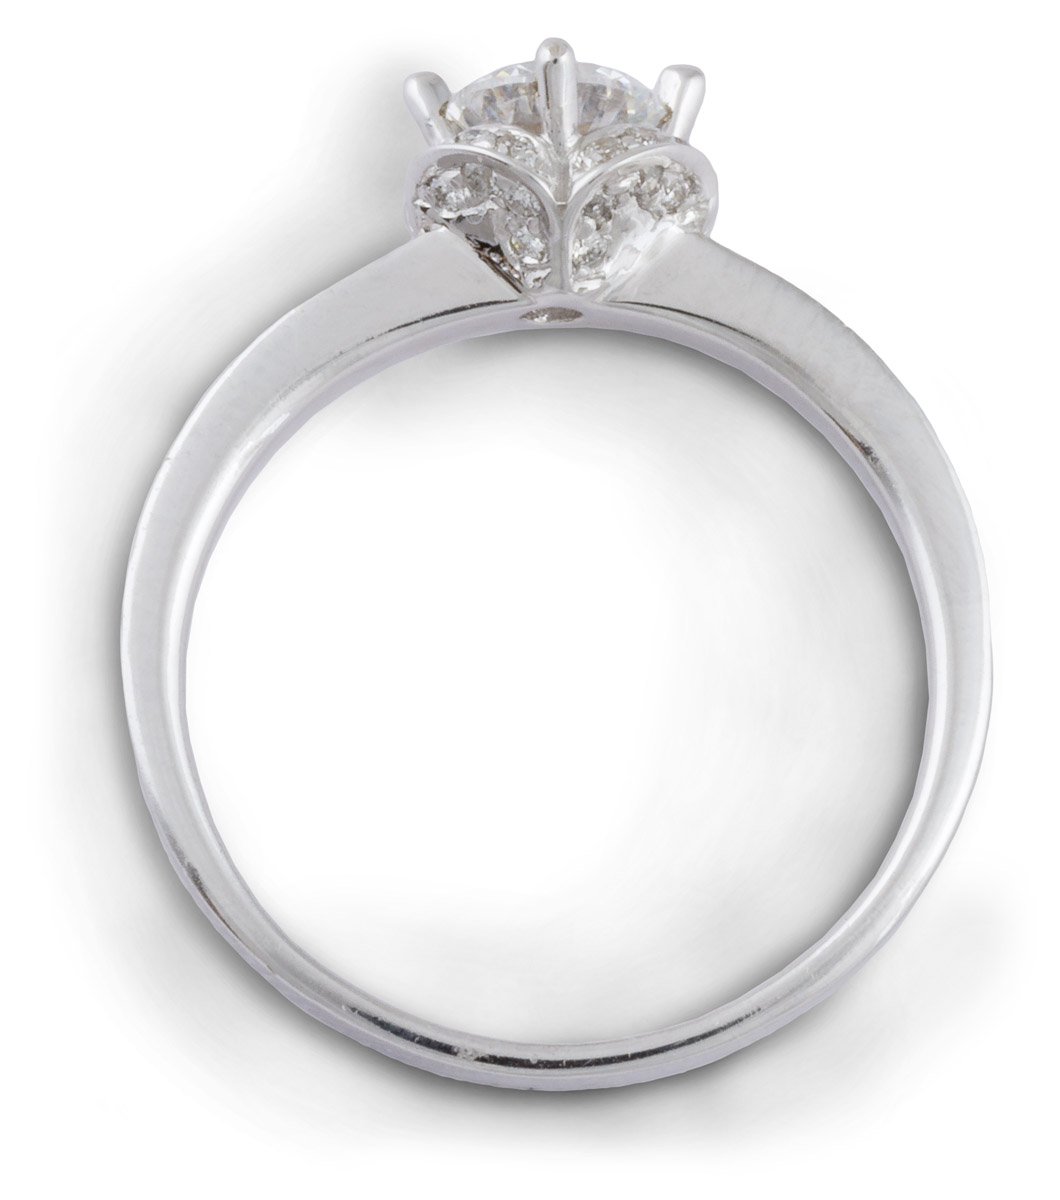 Arched Halo Engagement Ring with Diamond Accents - Top